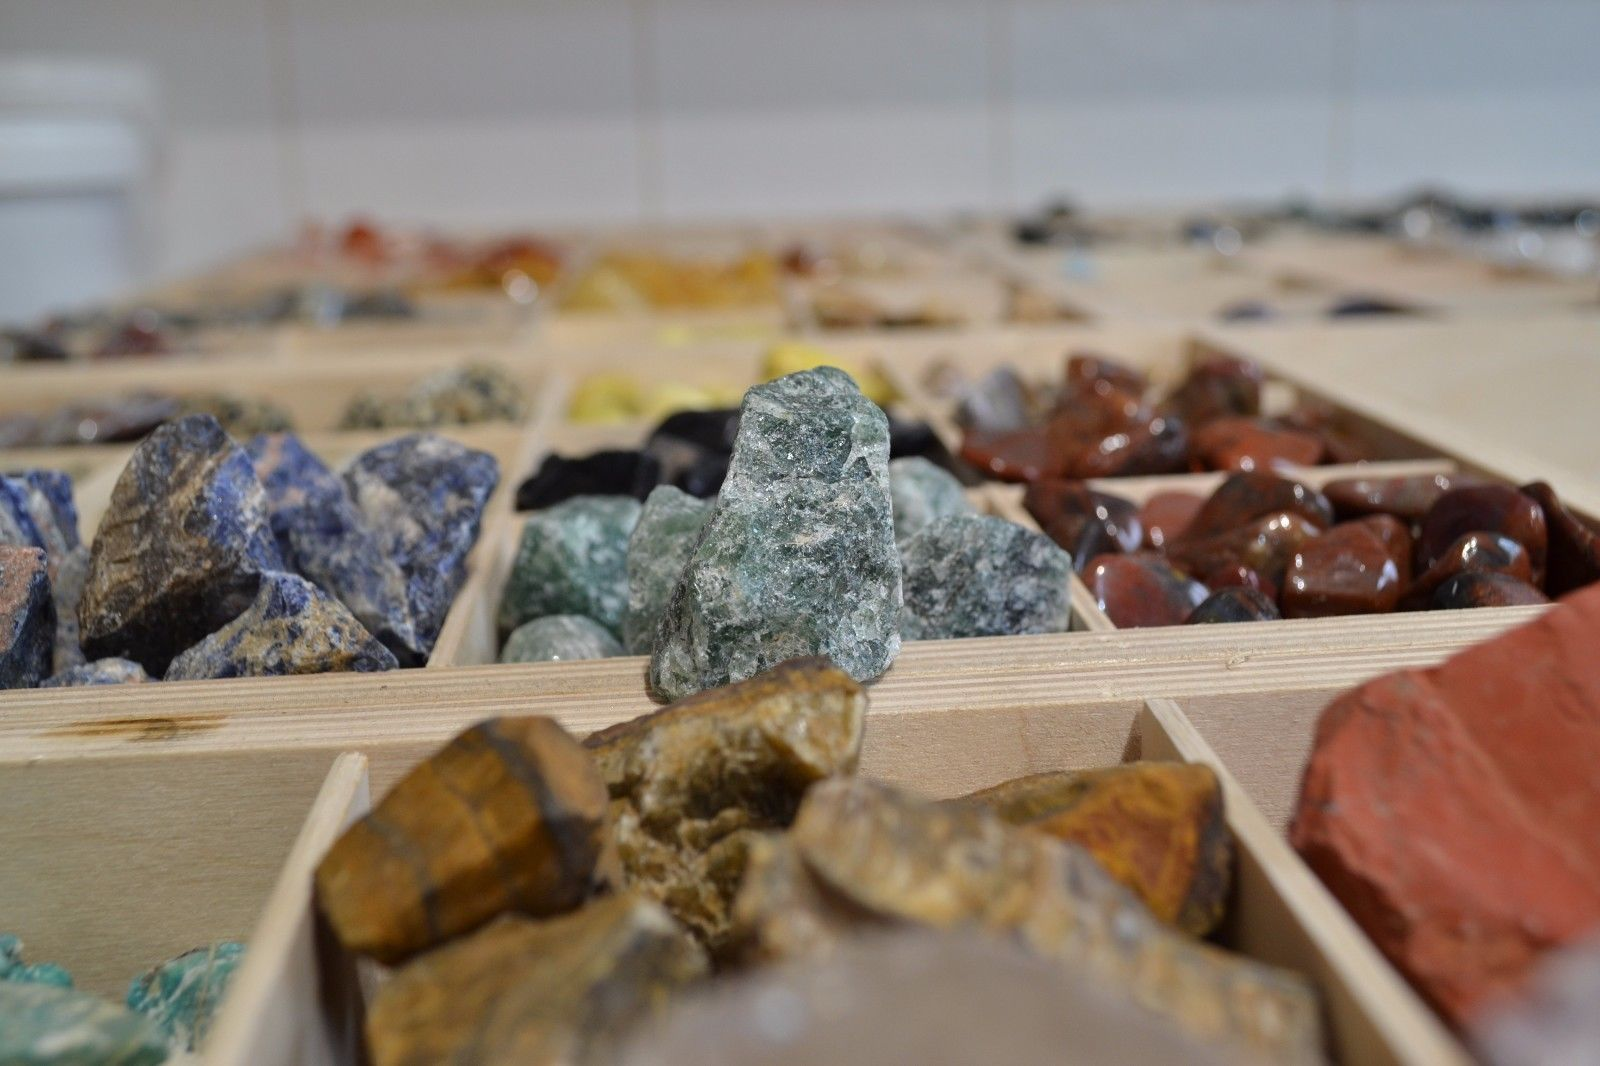 Crystals & Minerals - Rough healing Crystals